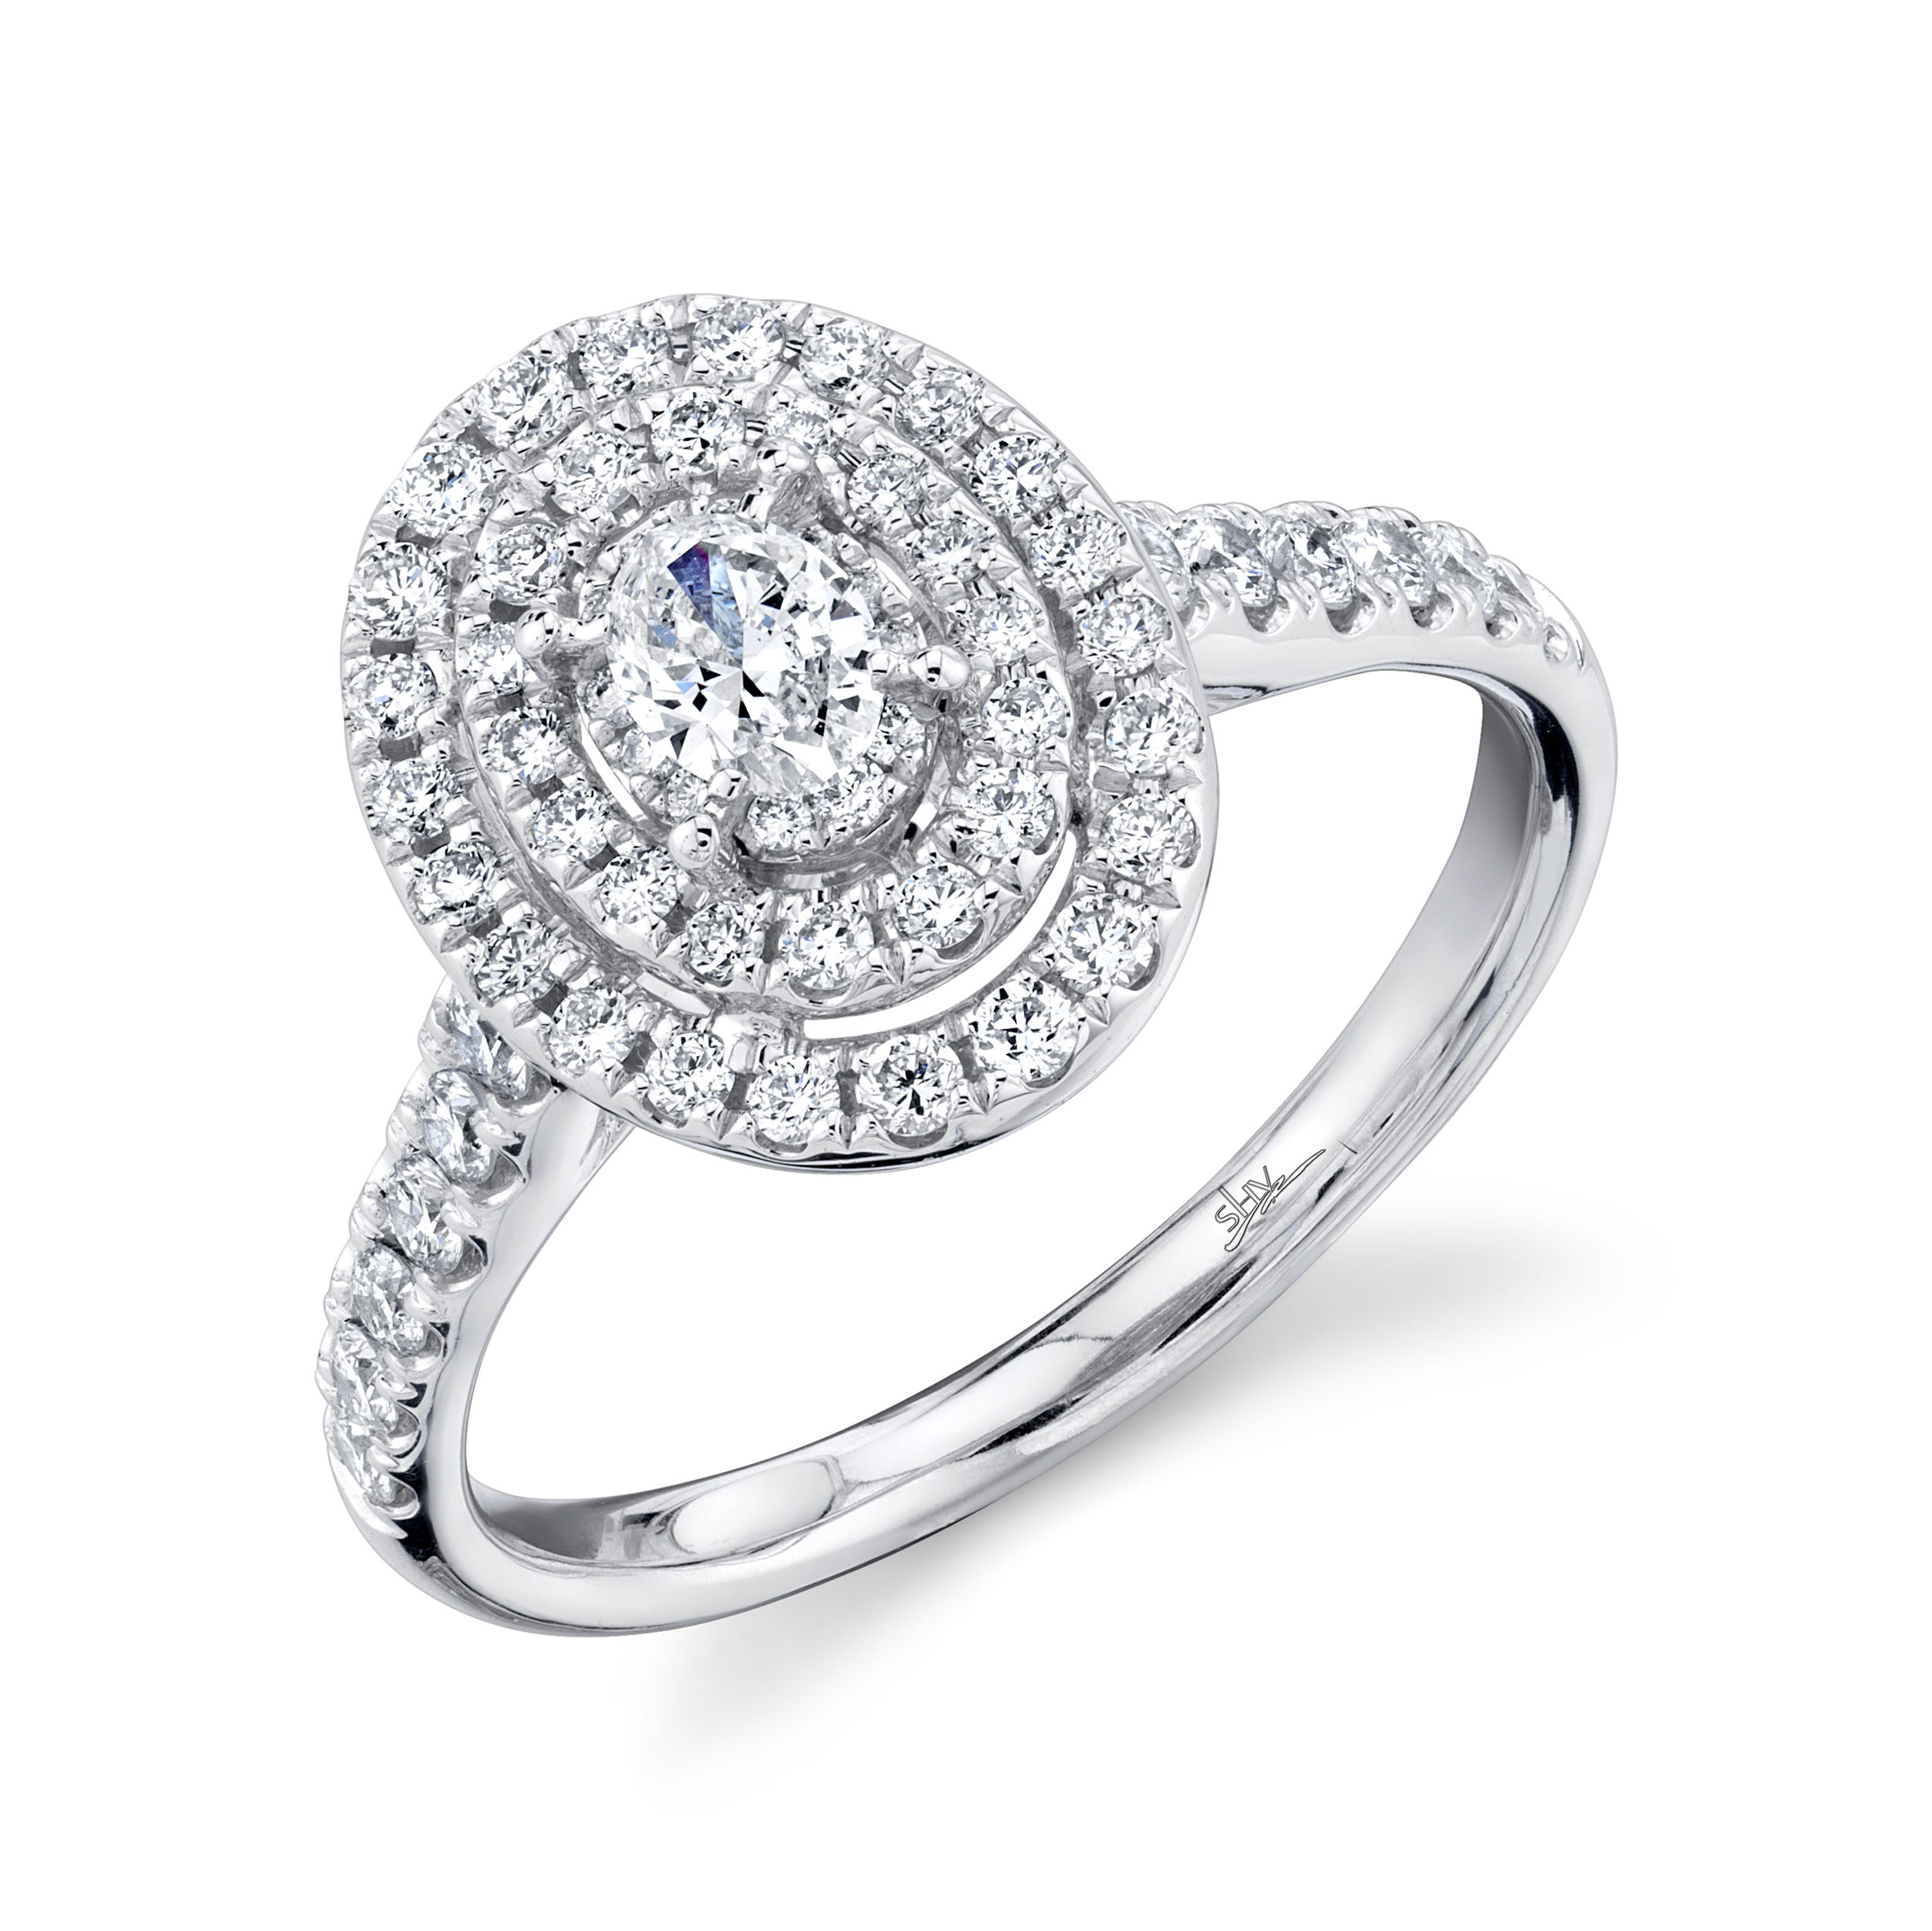 Shy Creation 3/4ctw. Oval Diamond Double Halo Engagement Ring in 14k White Gold SC22007185